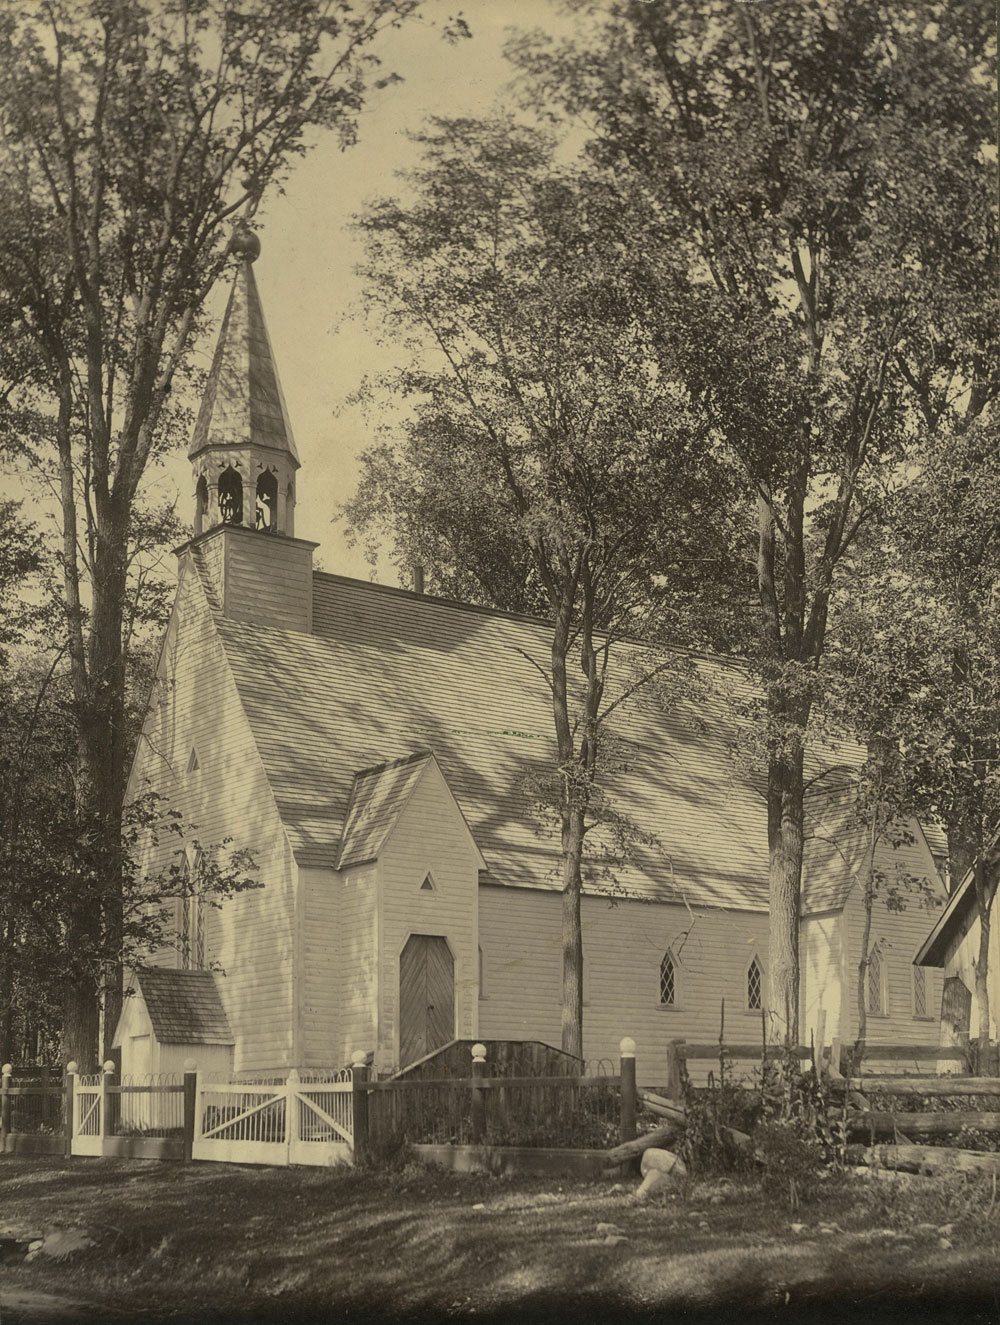 The original St. Paul's Church. Photo from the collection of Roger Young.